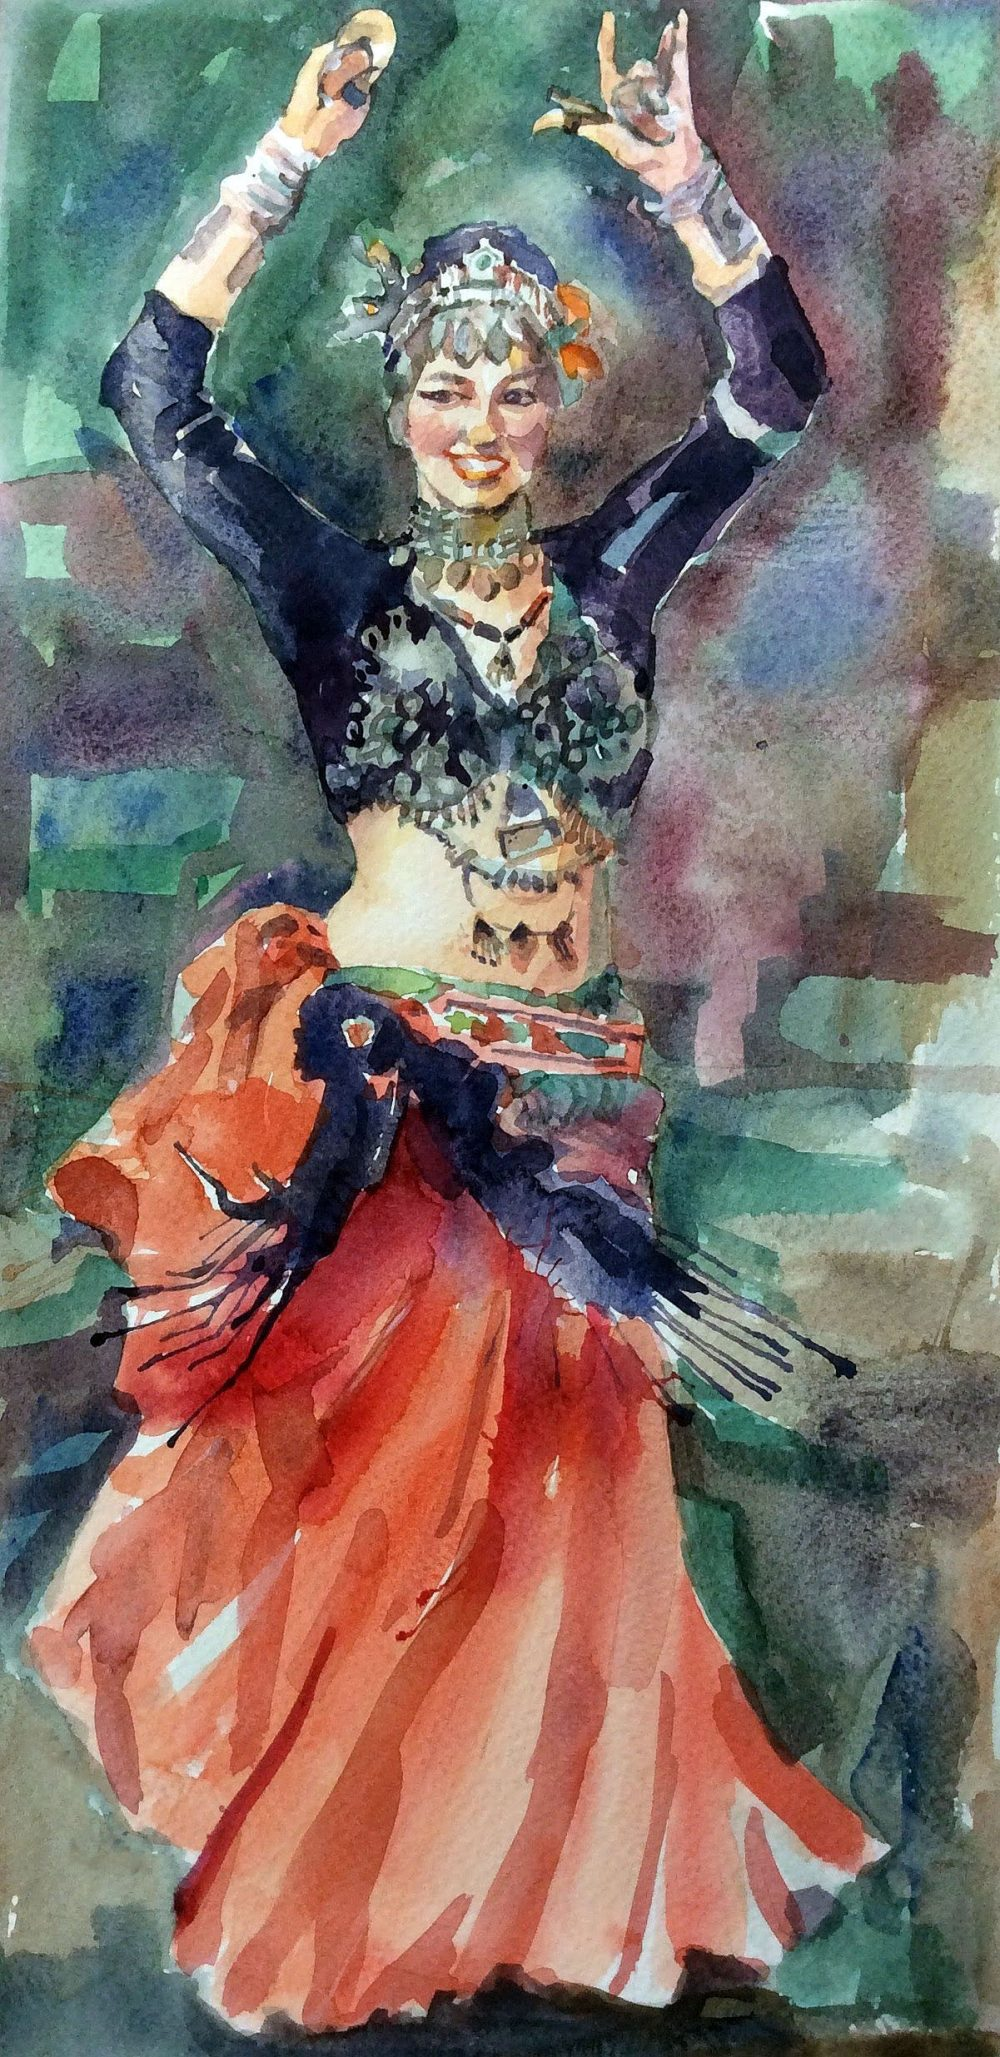 Tribal dancer in watercolour